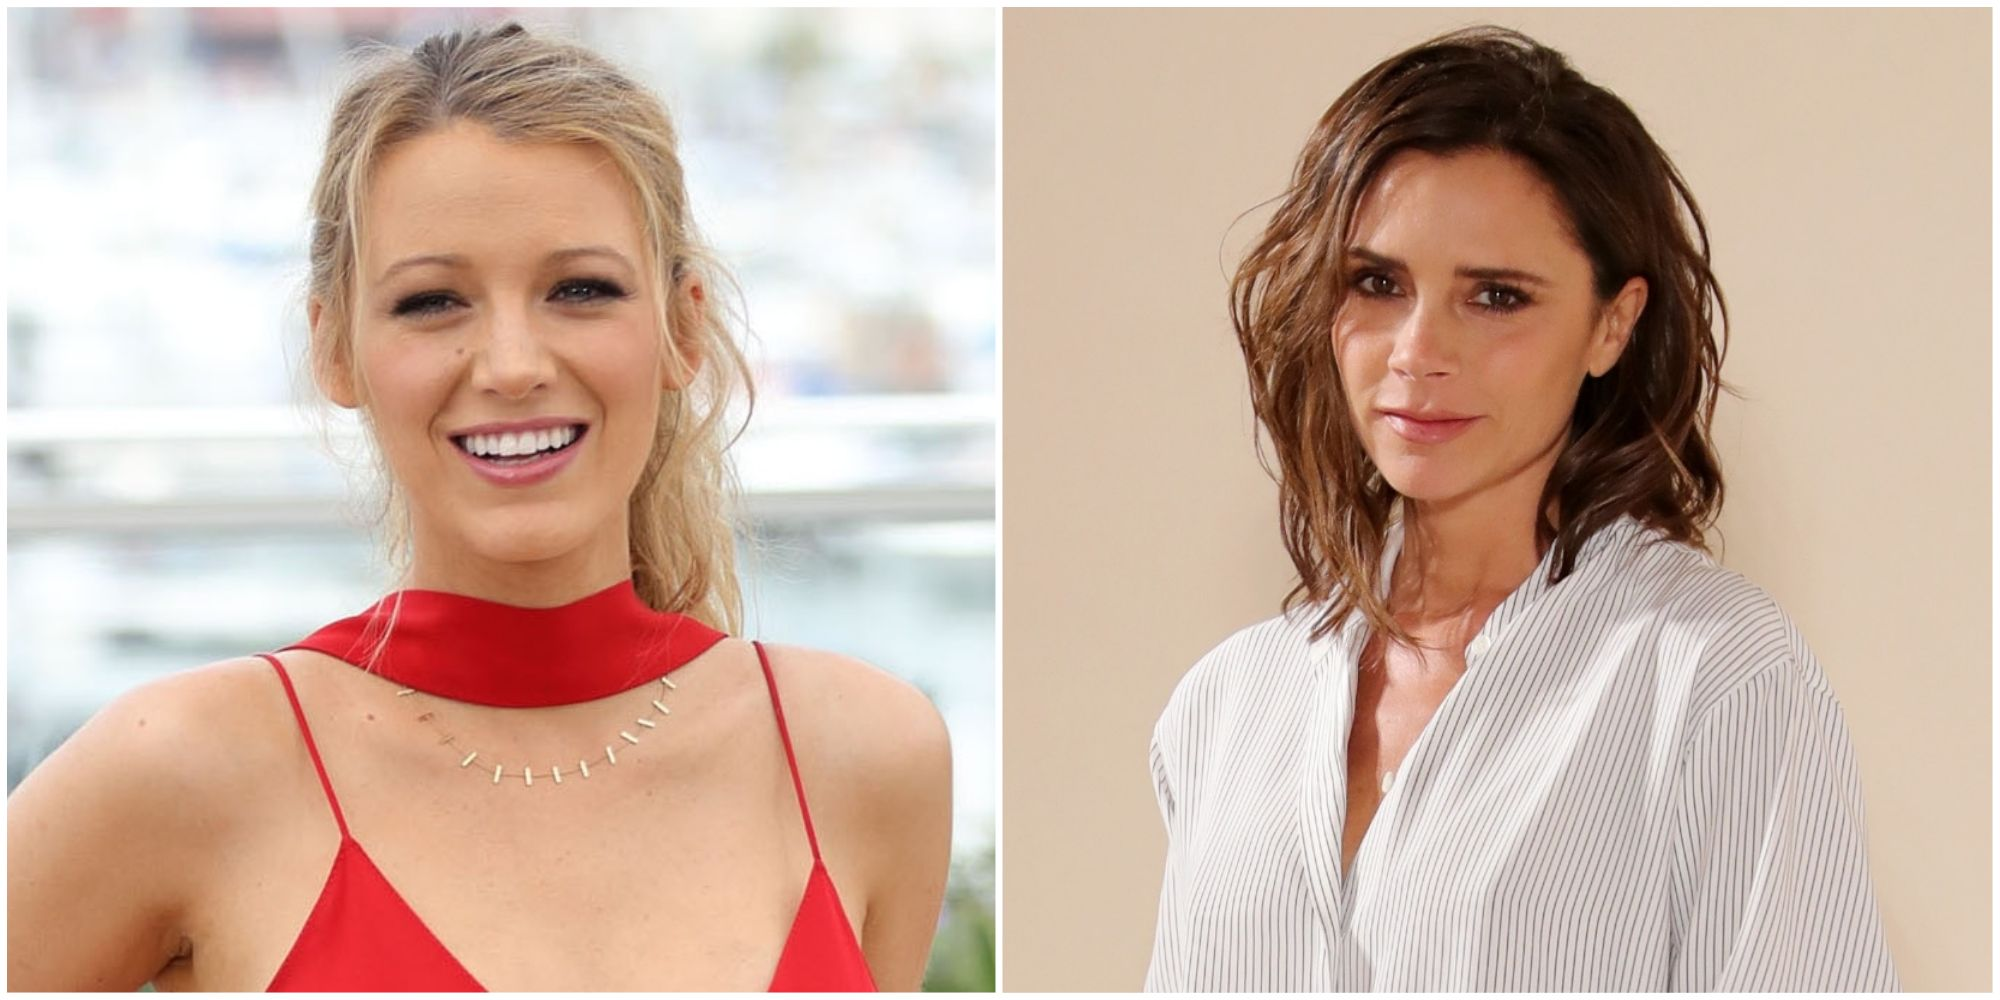 Blake Lively and Victoria Beckham